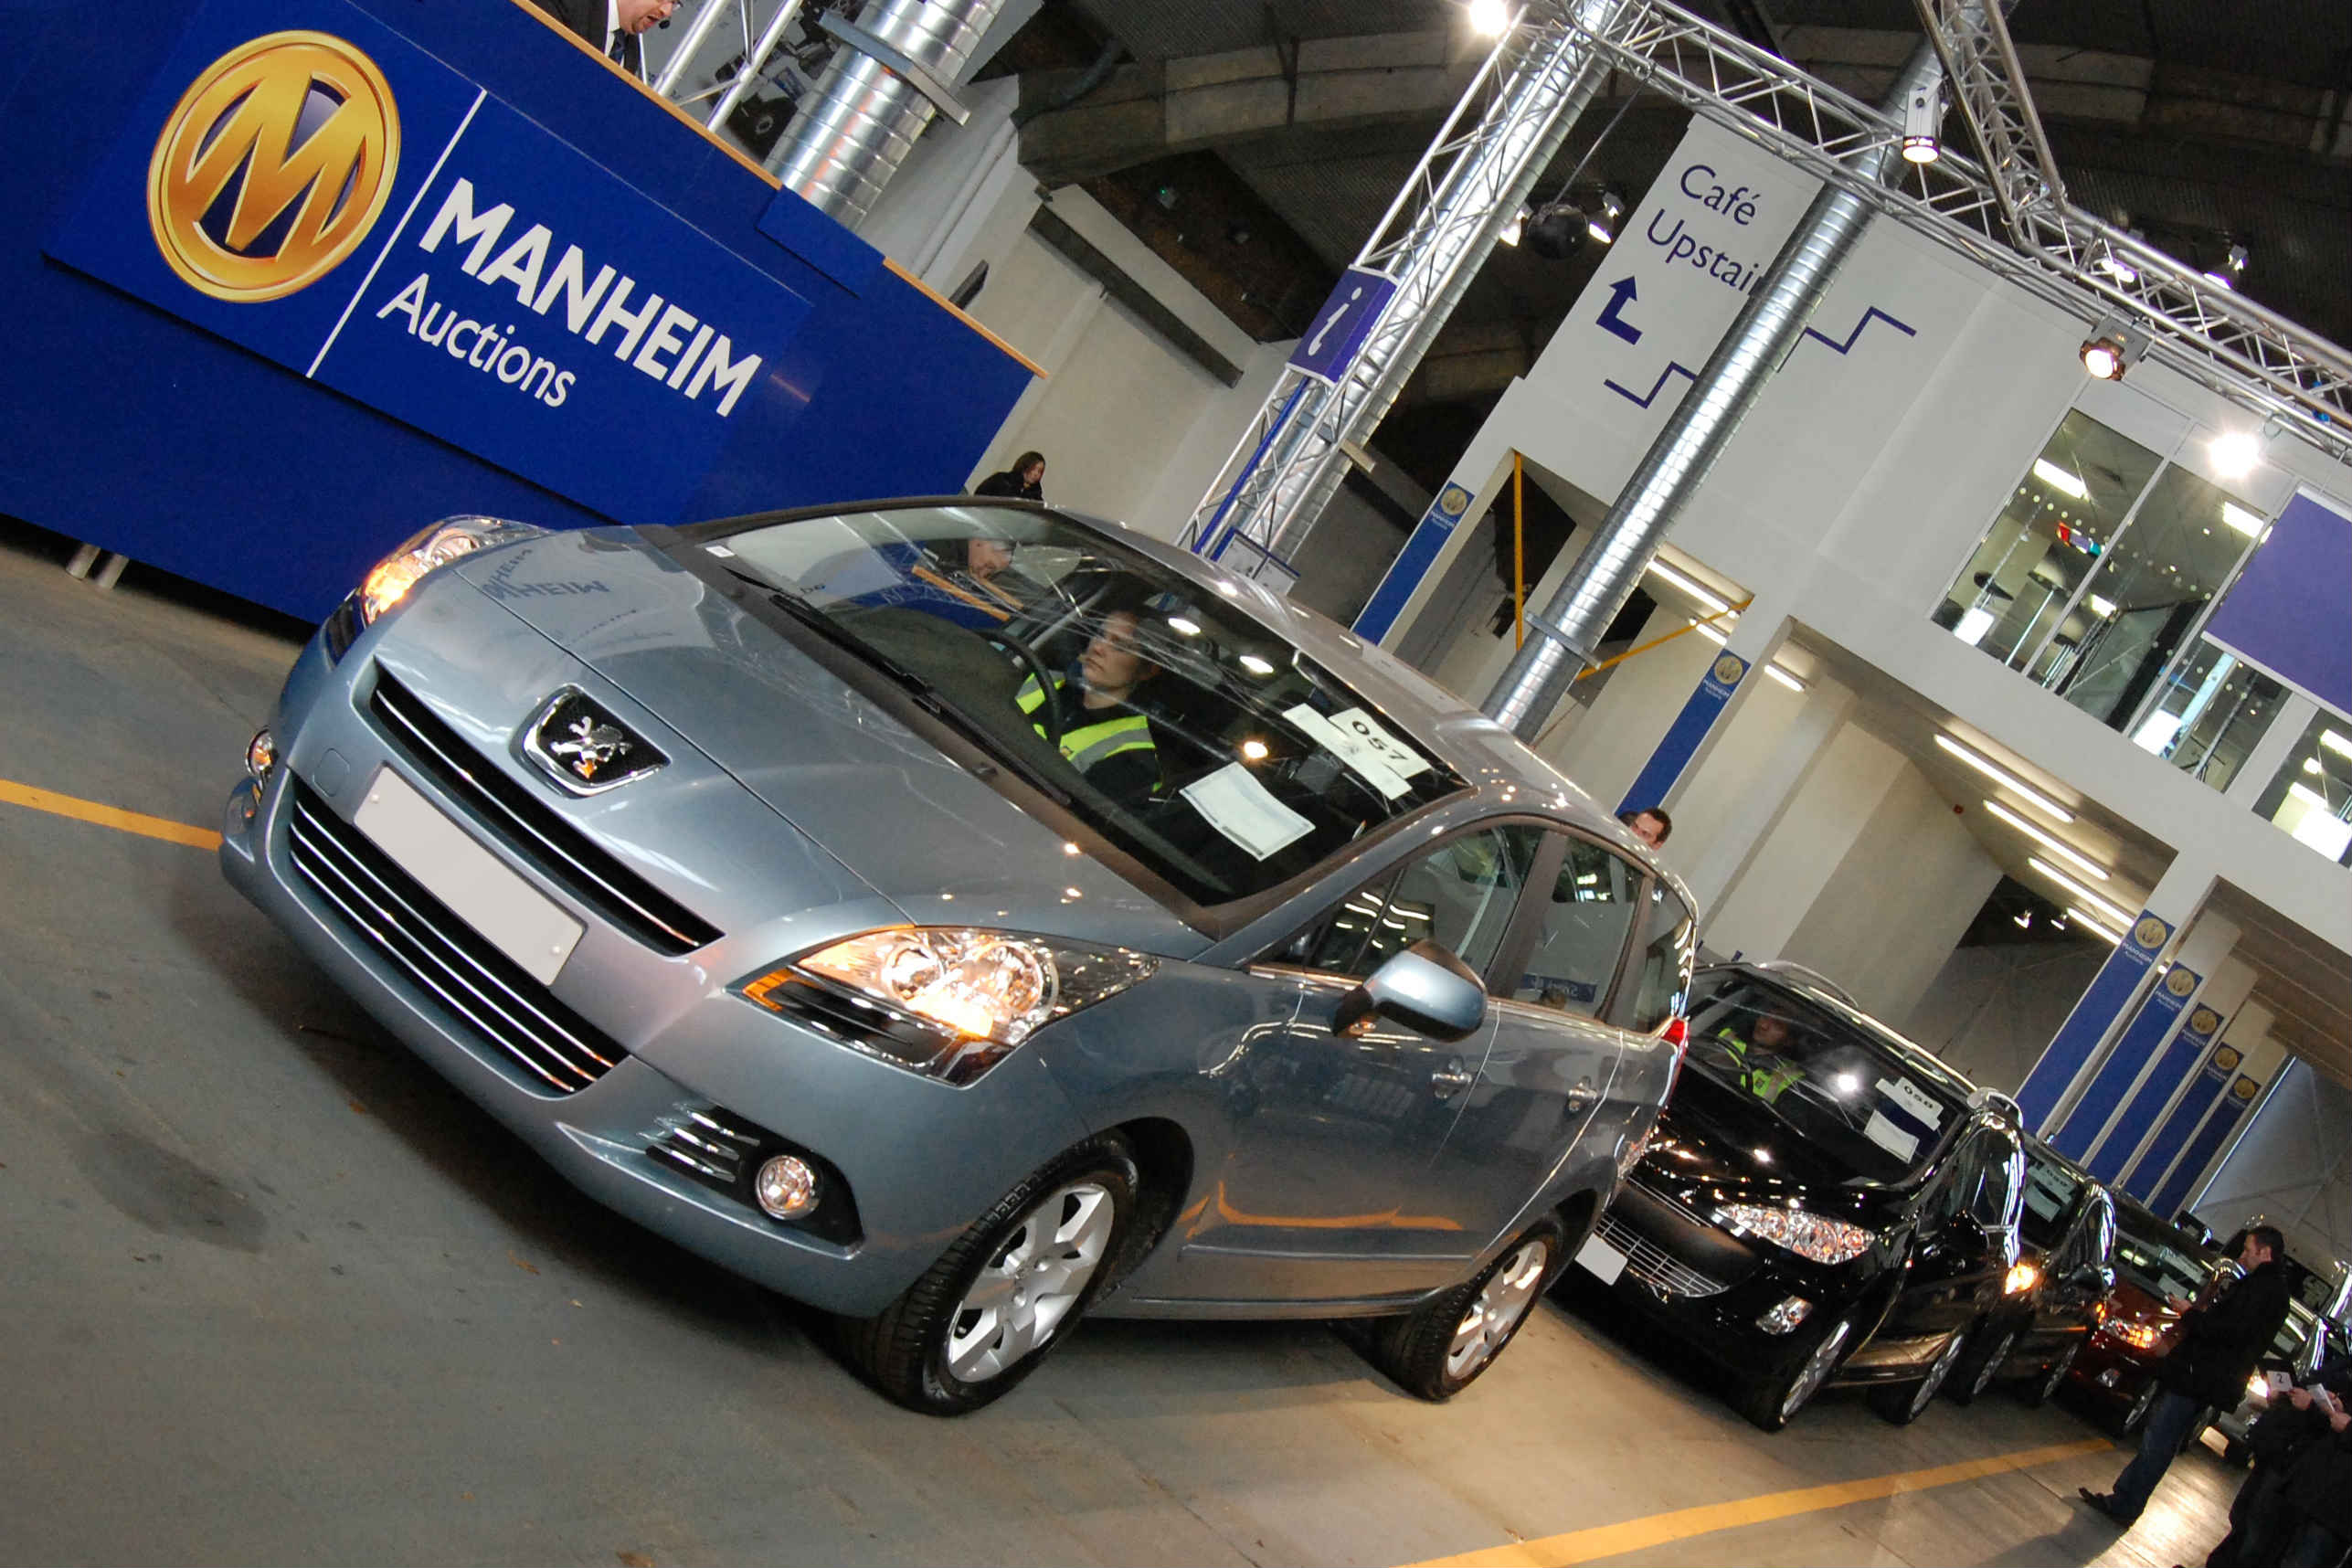 Car sale at a Manheim auciton centre